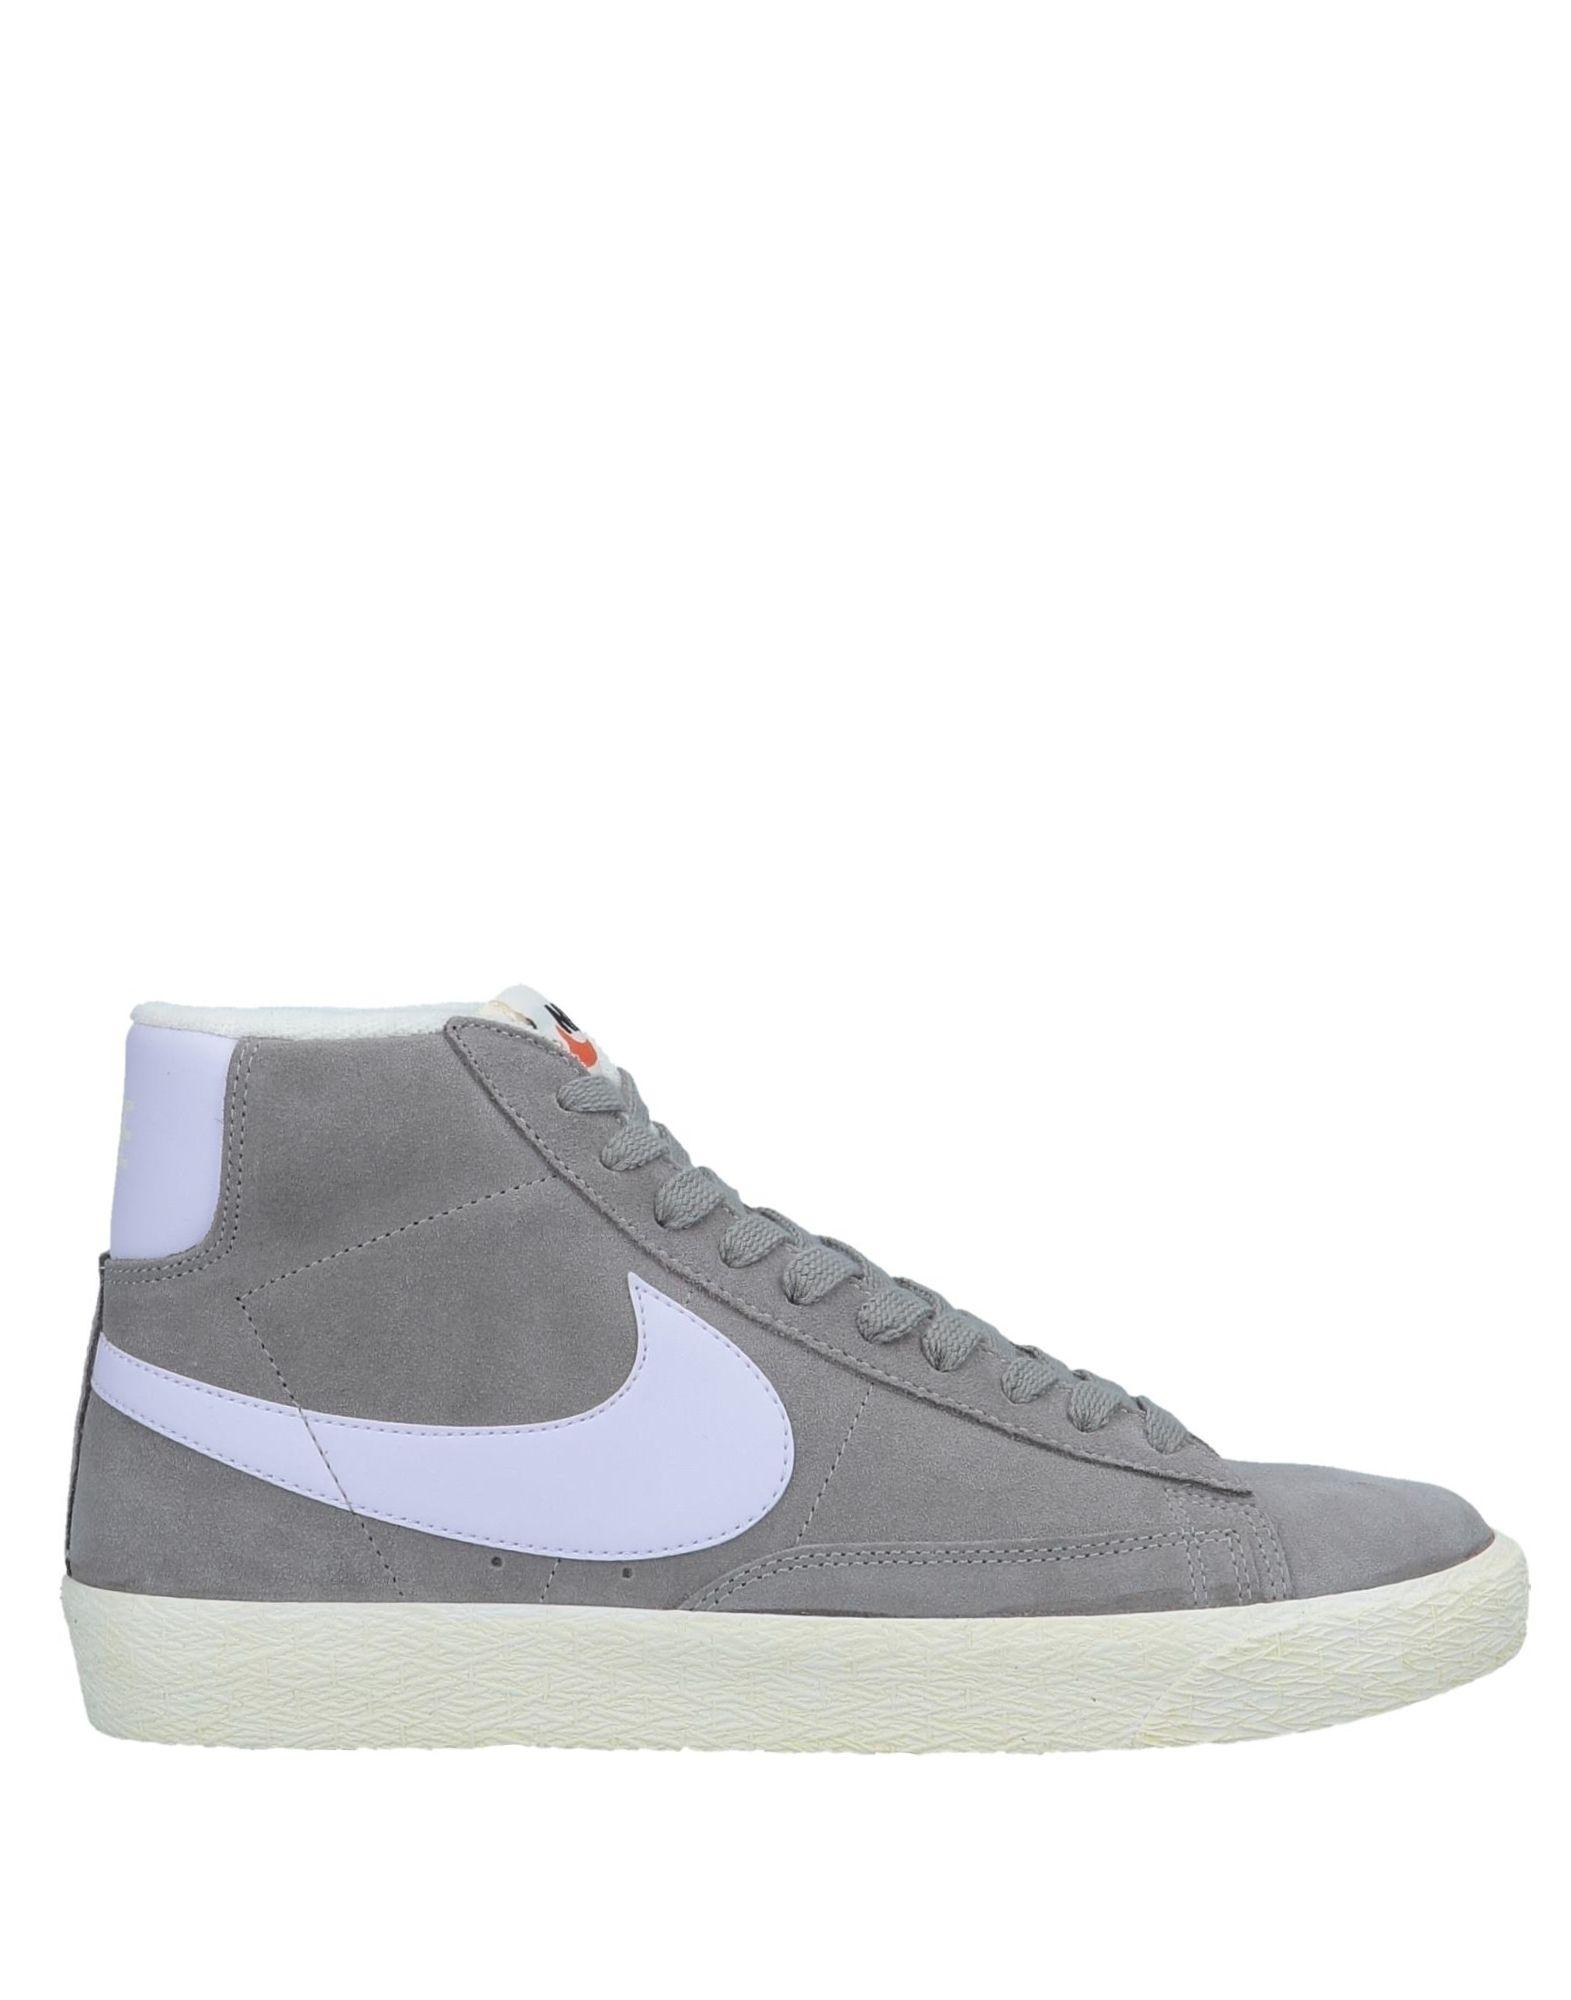 nike suede shoes high tops